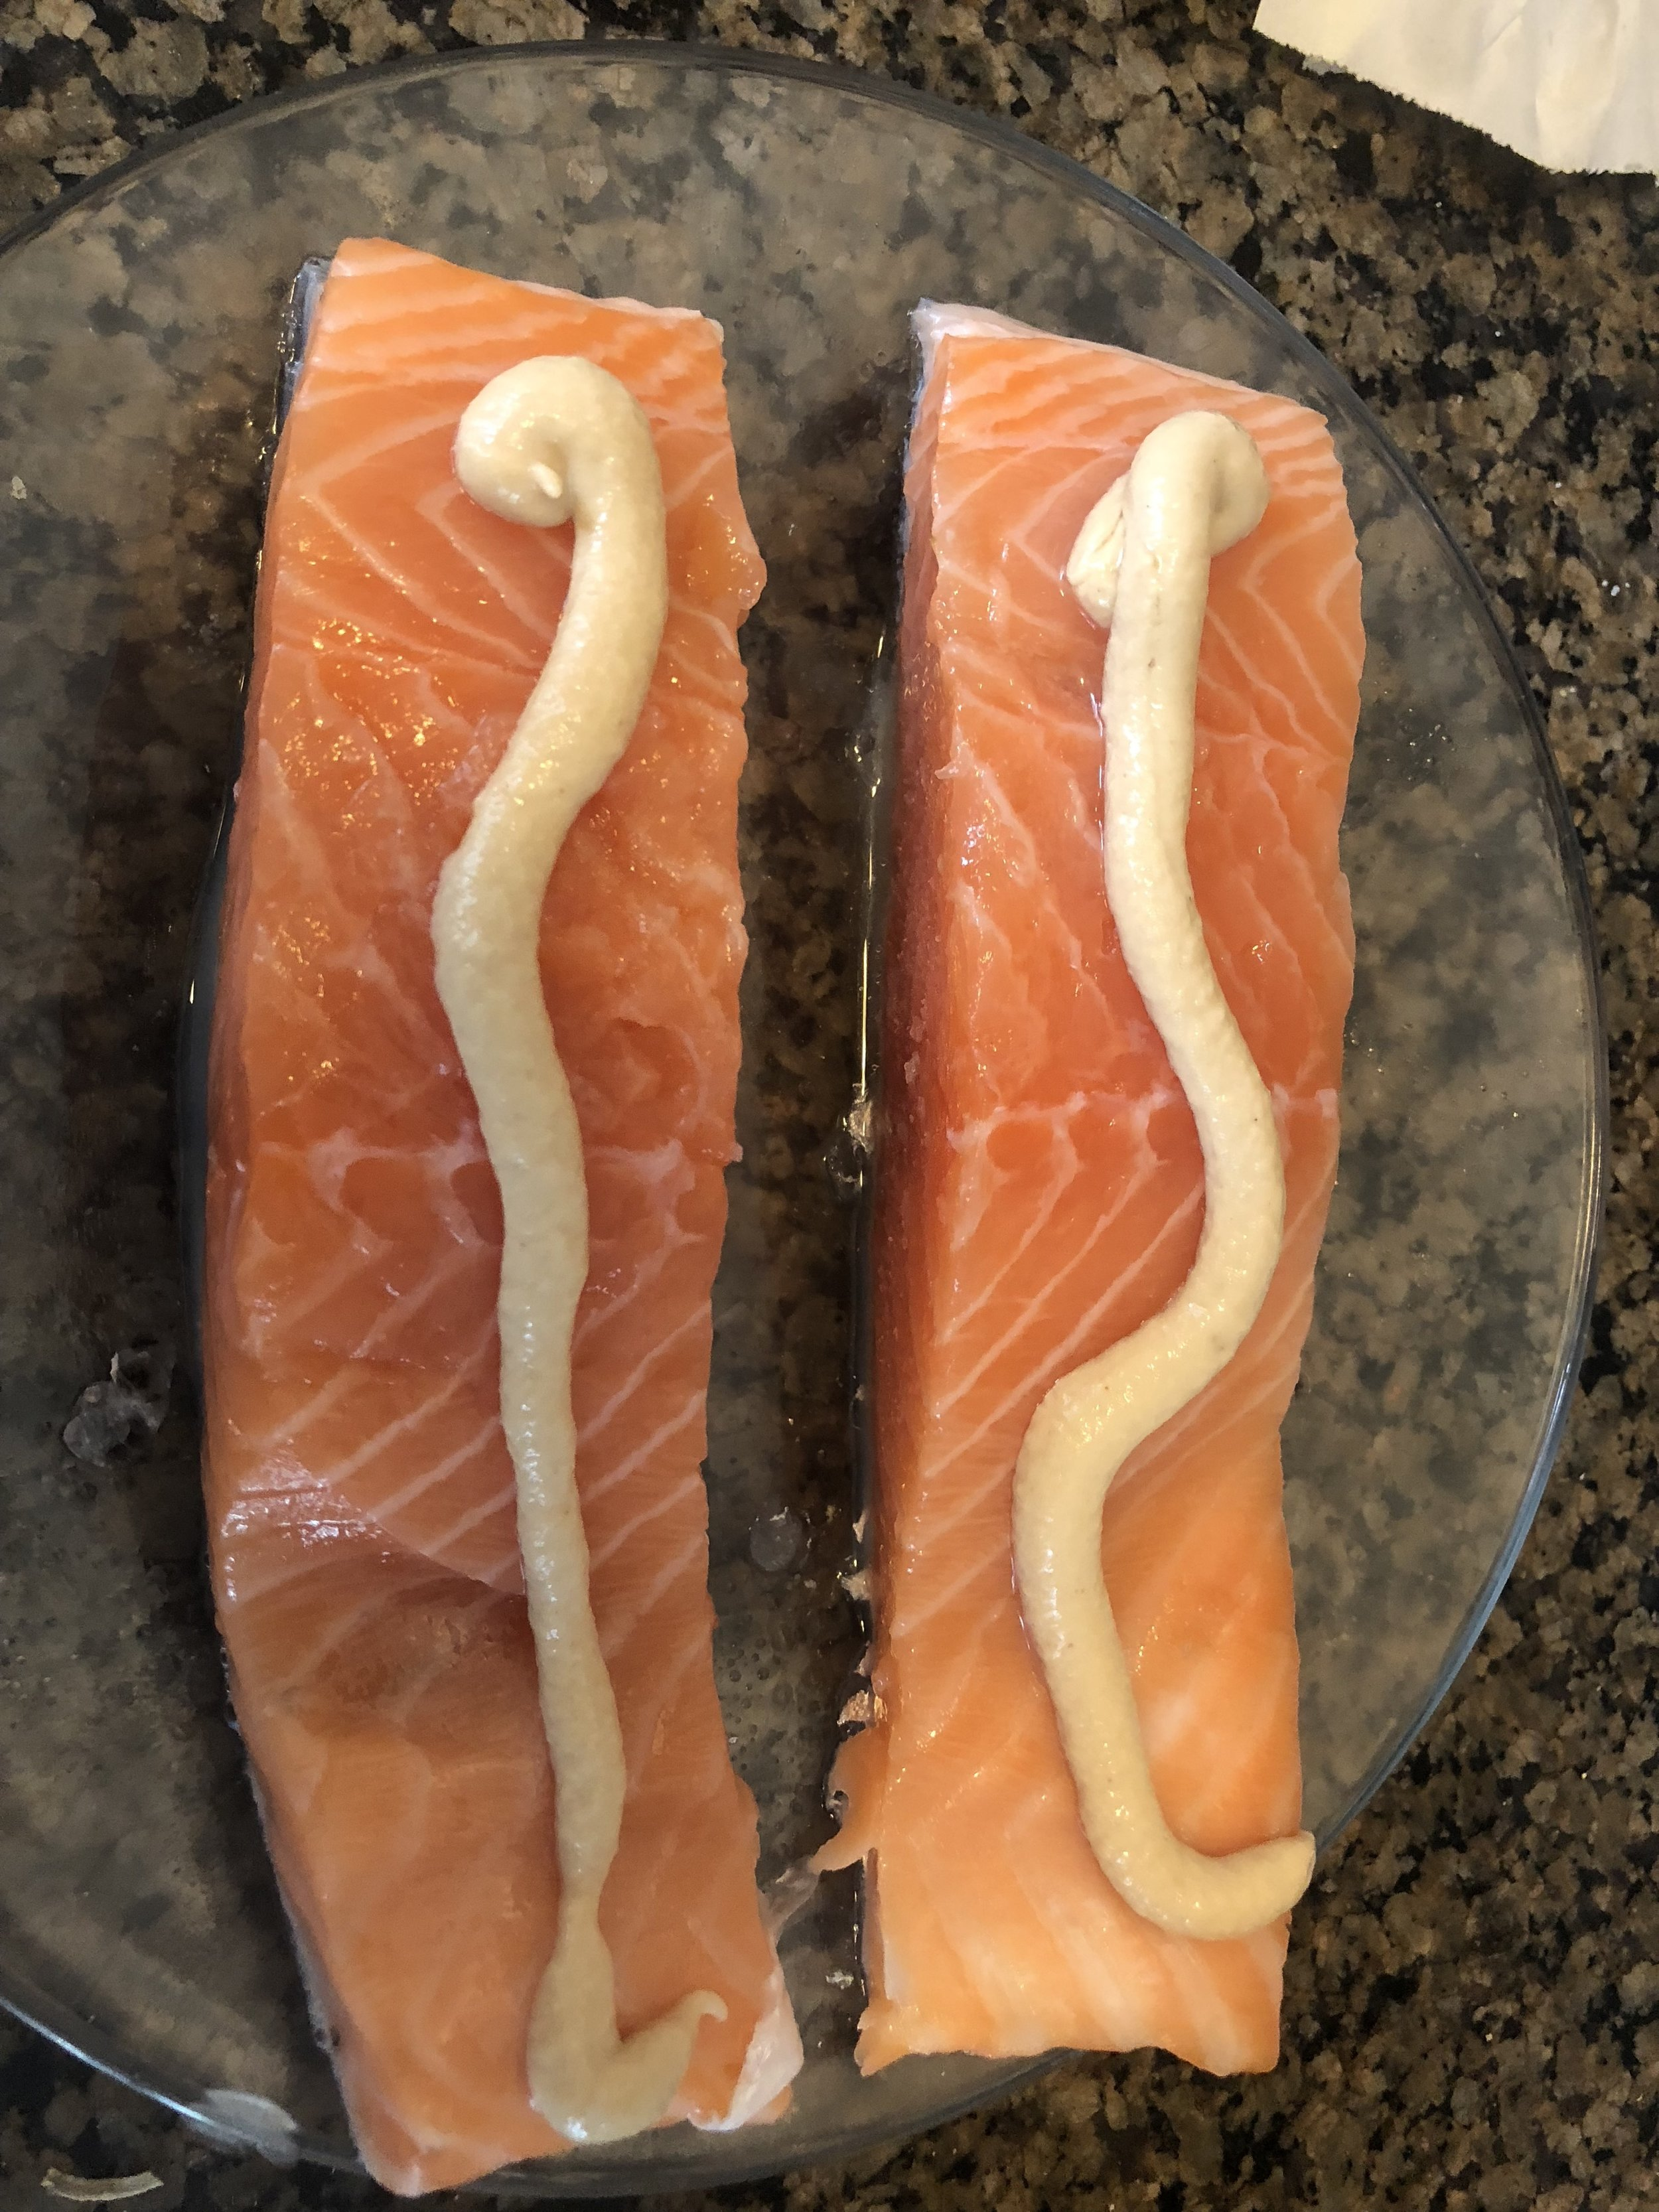 portion your salmon into 2 steaks  spread the mustard on the top of the salmon, season with salt and pepper and then dust with paprika.